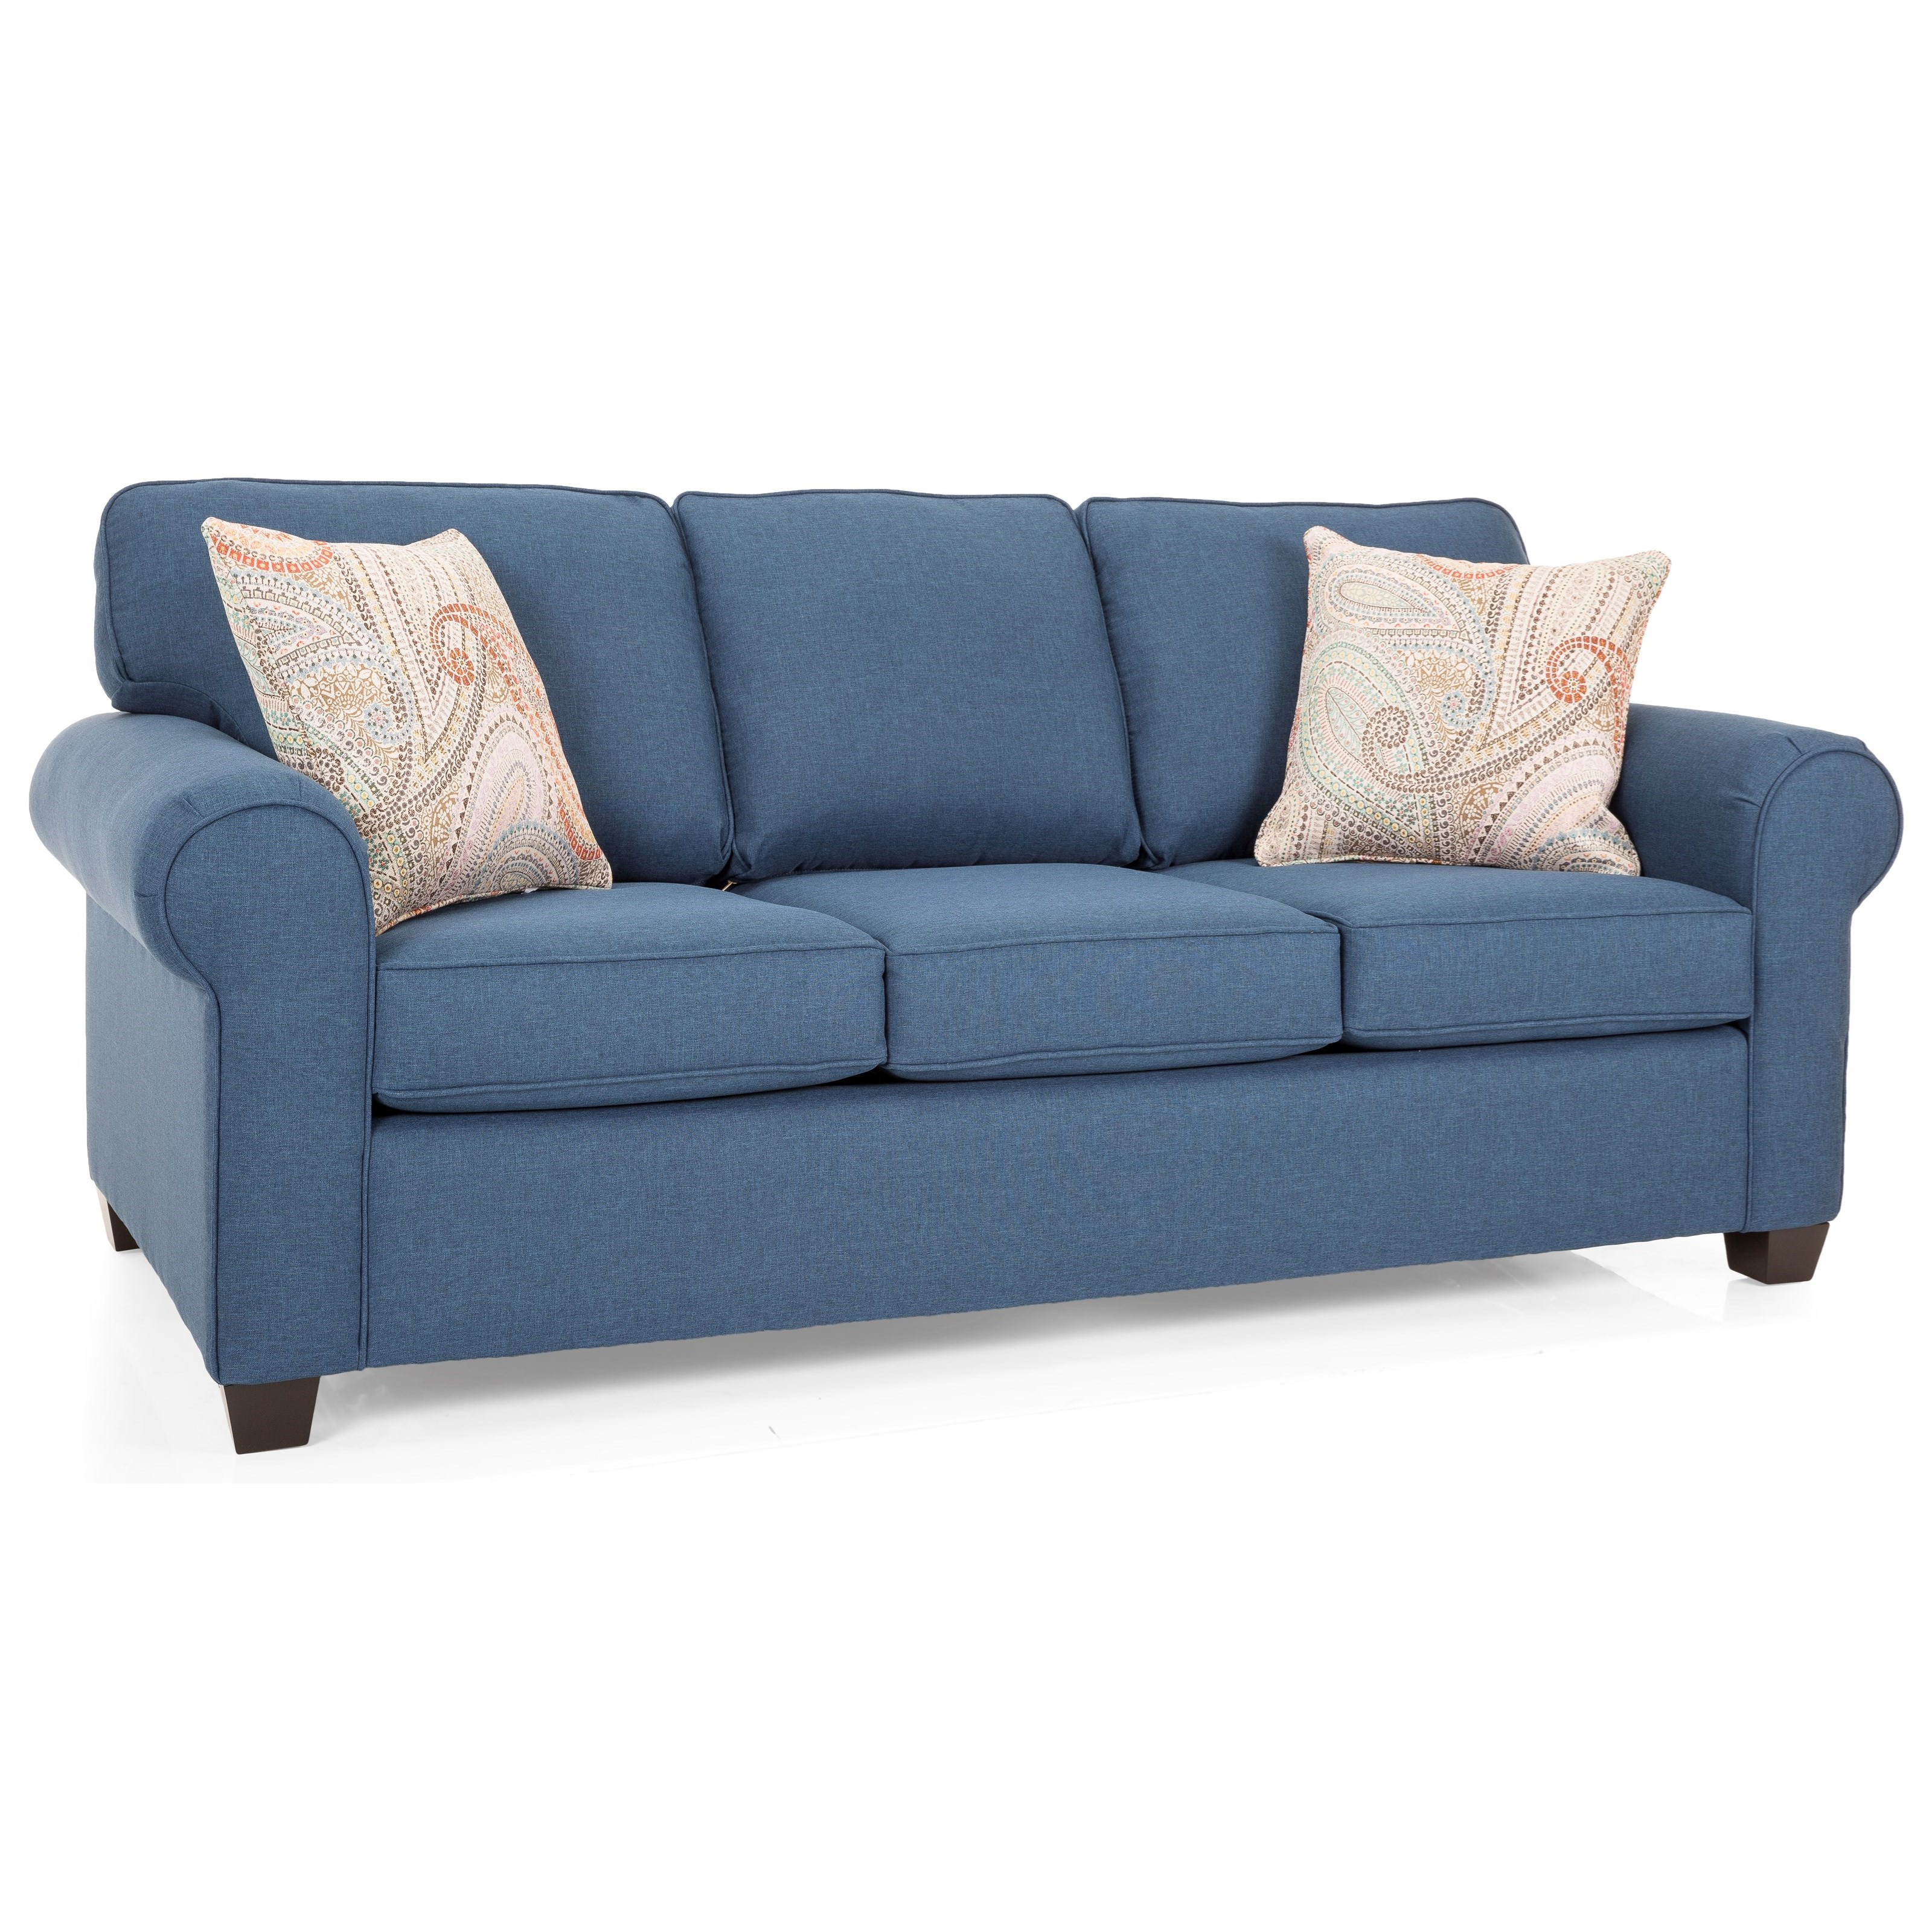 2179 Queen Bed Sofa by Decor-Rest at Johnny Janosik